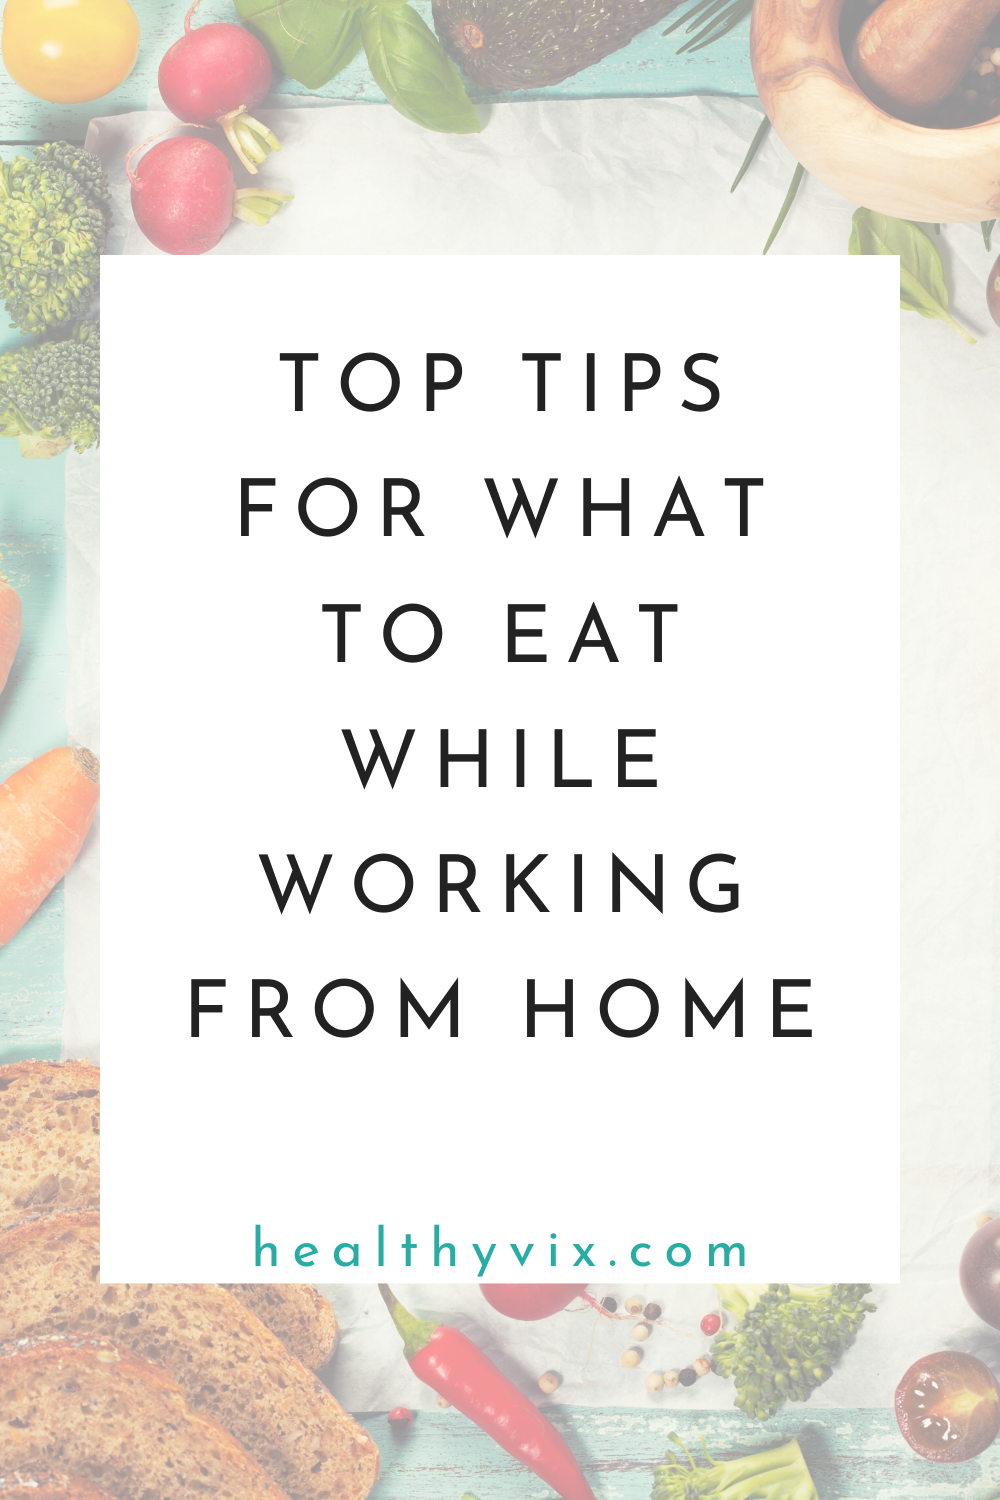 Top tips for what to eat while working from home